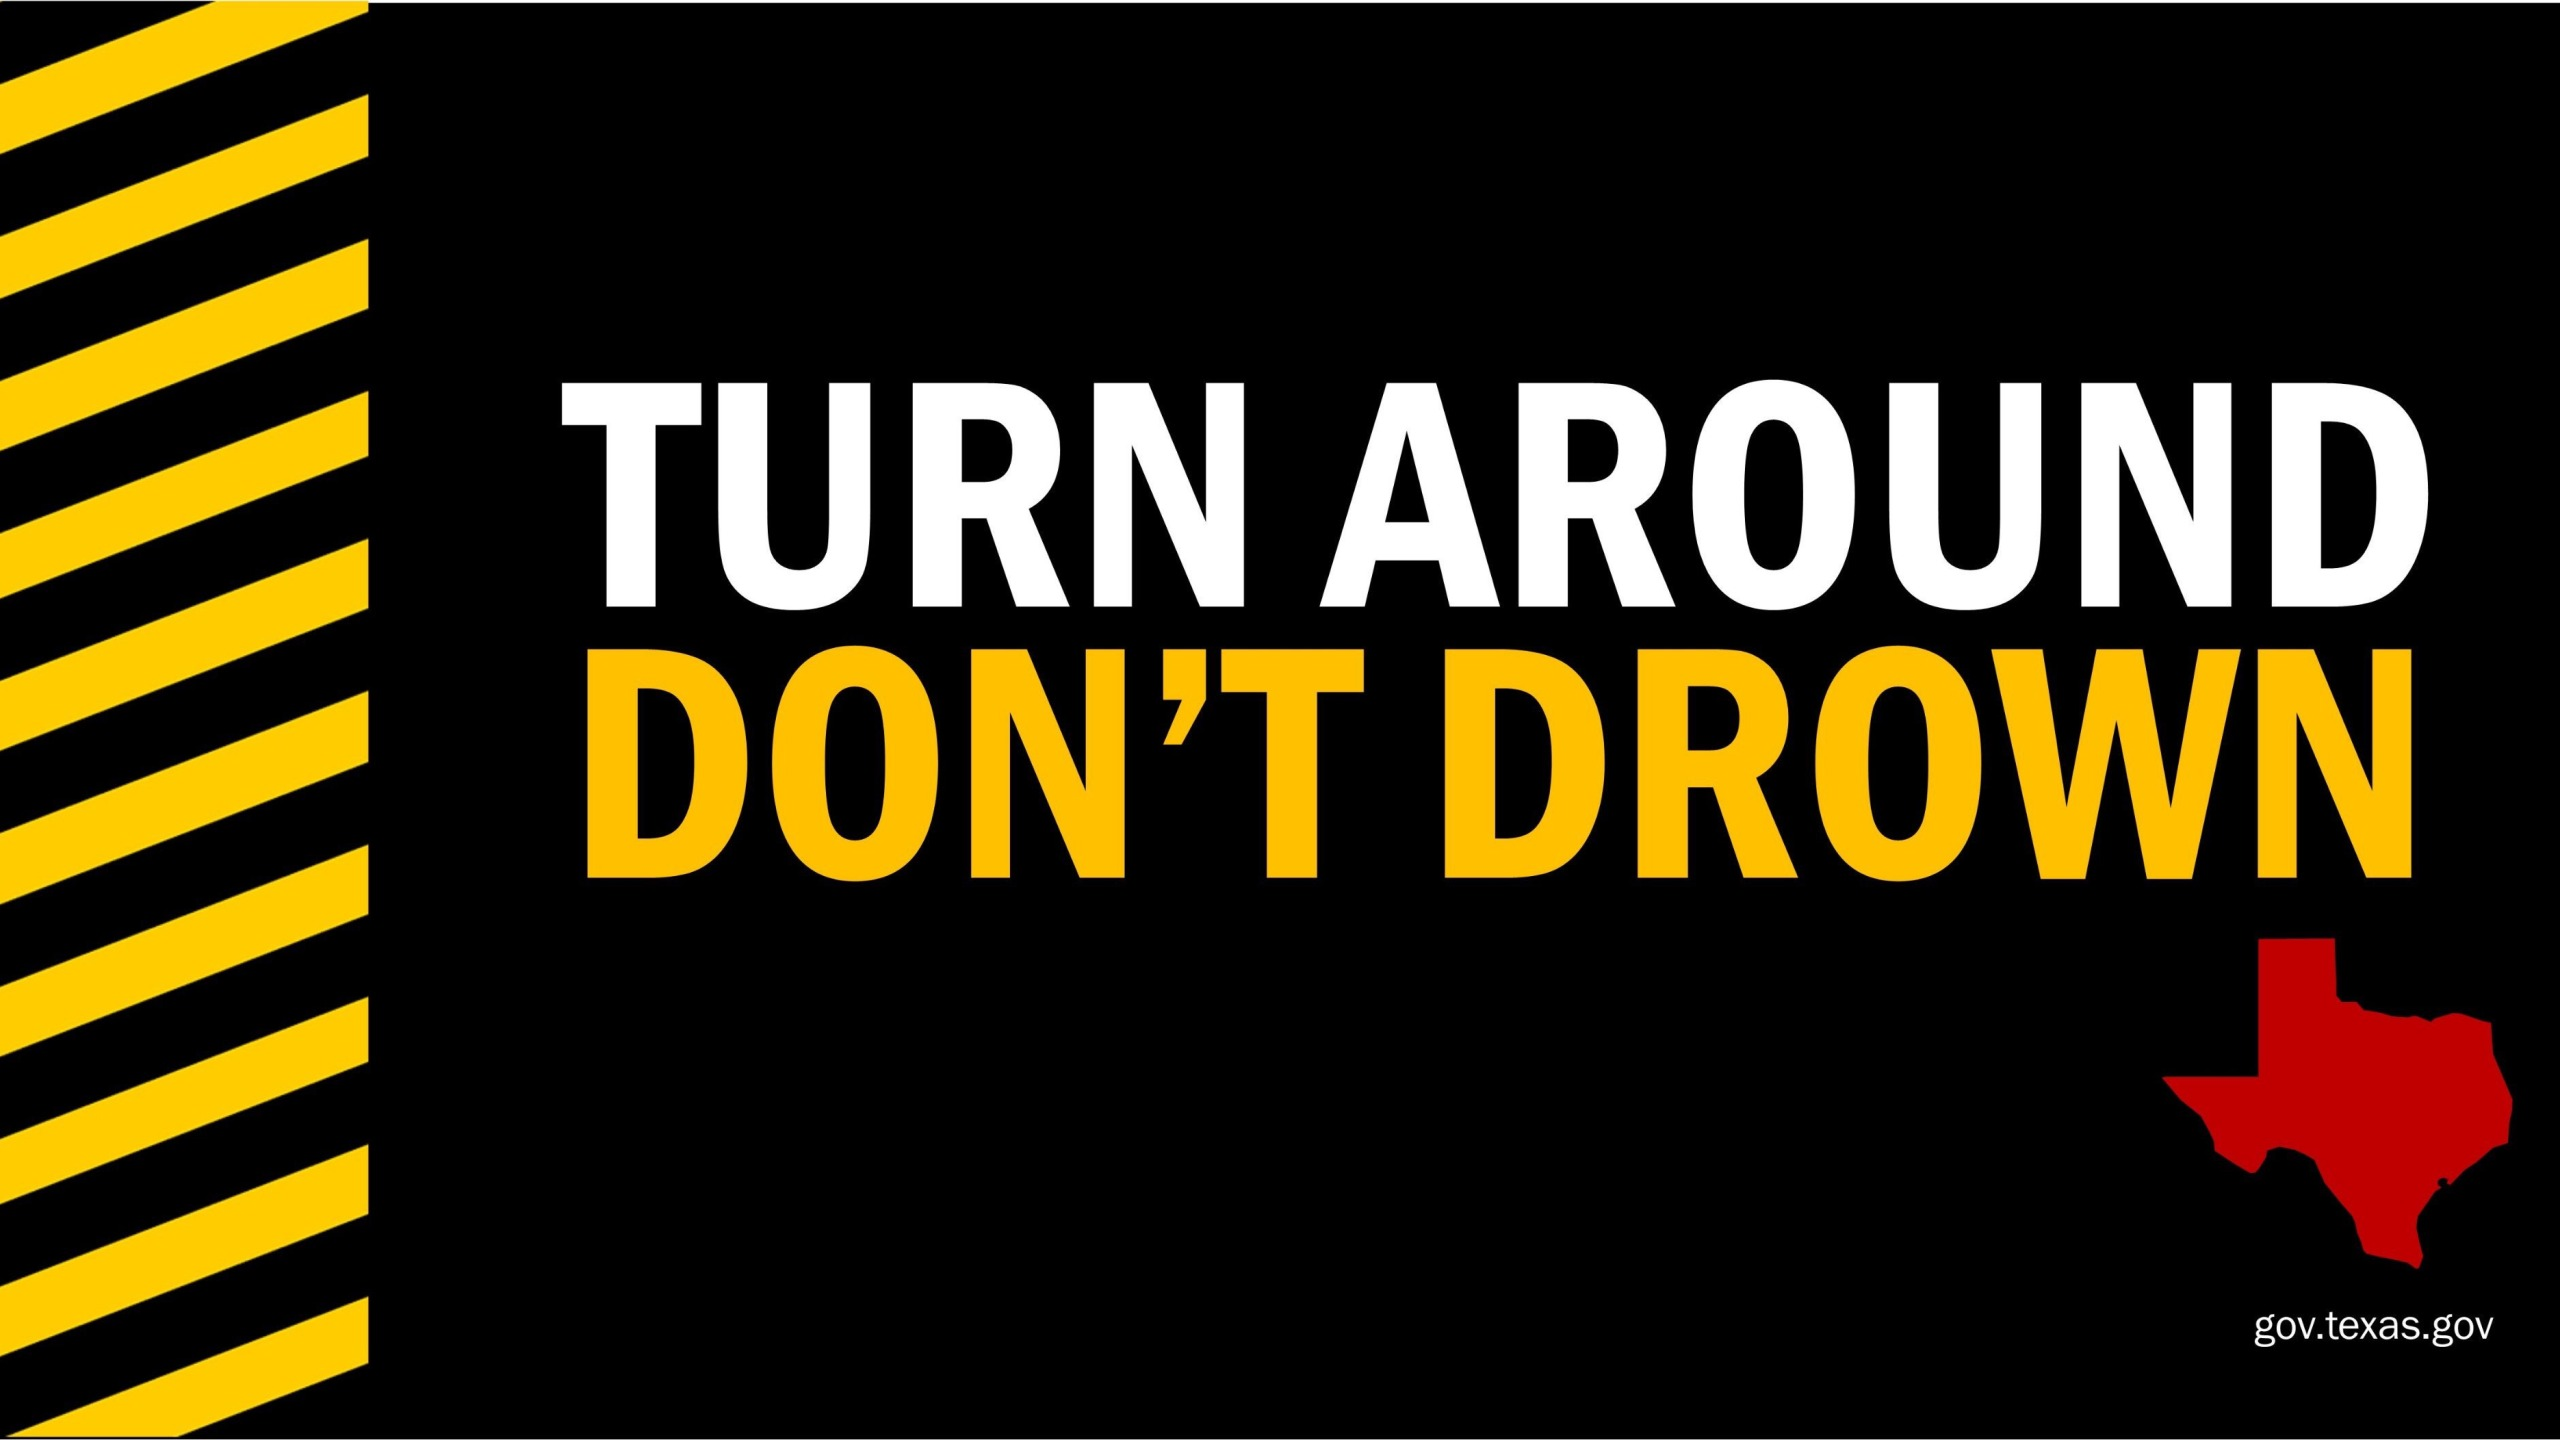 turn around don't drown_1558274719124.png.jpg